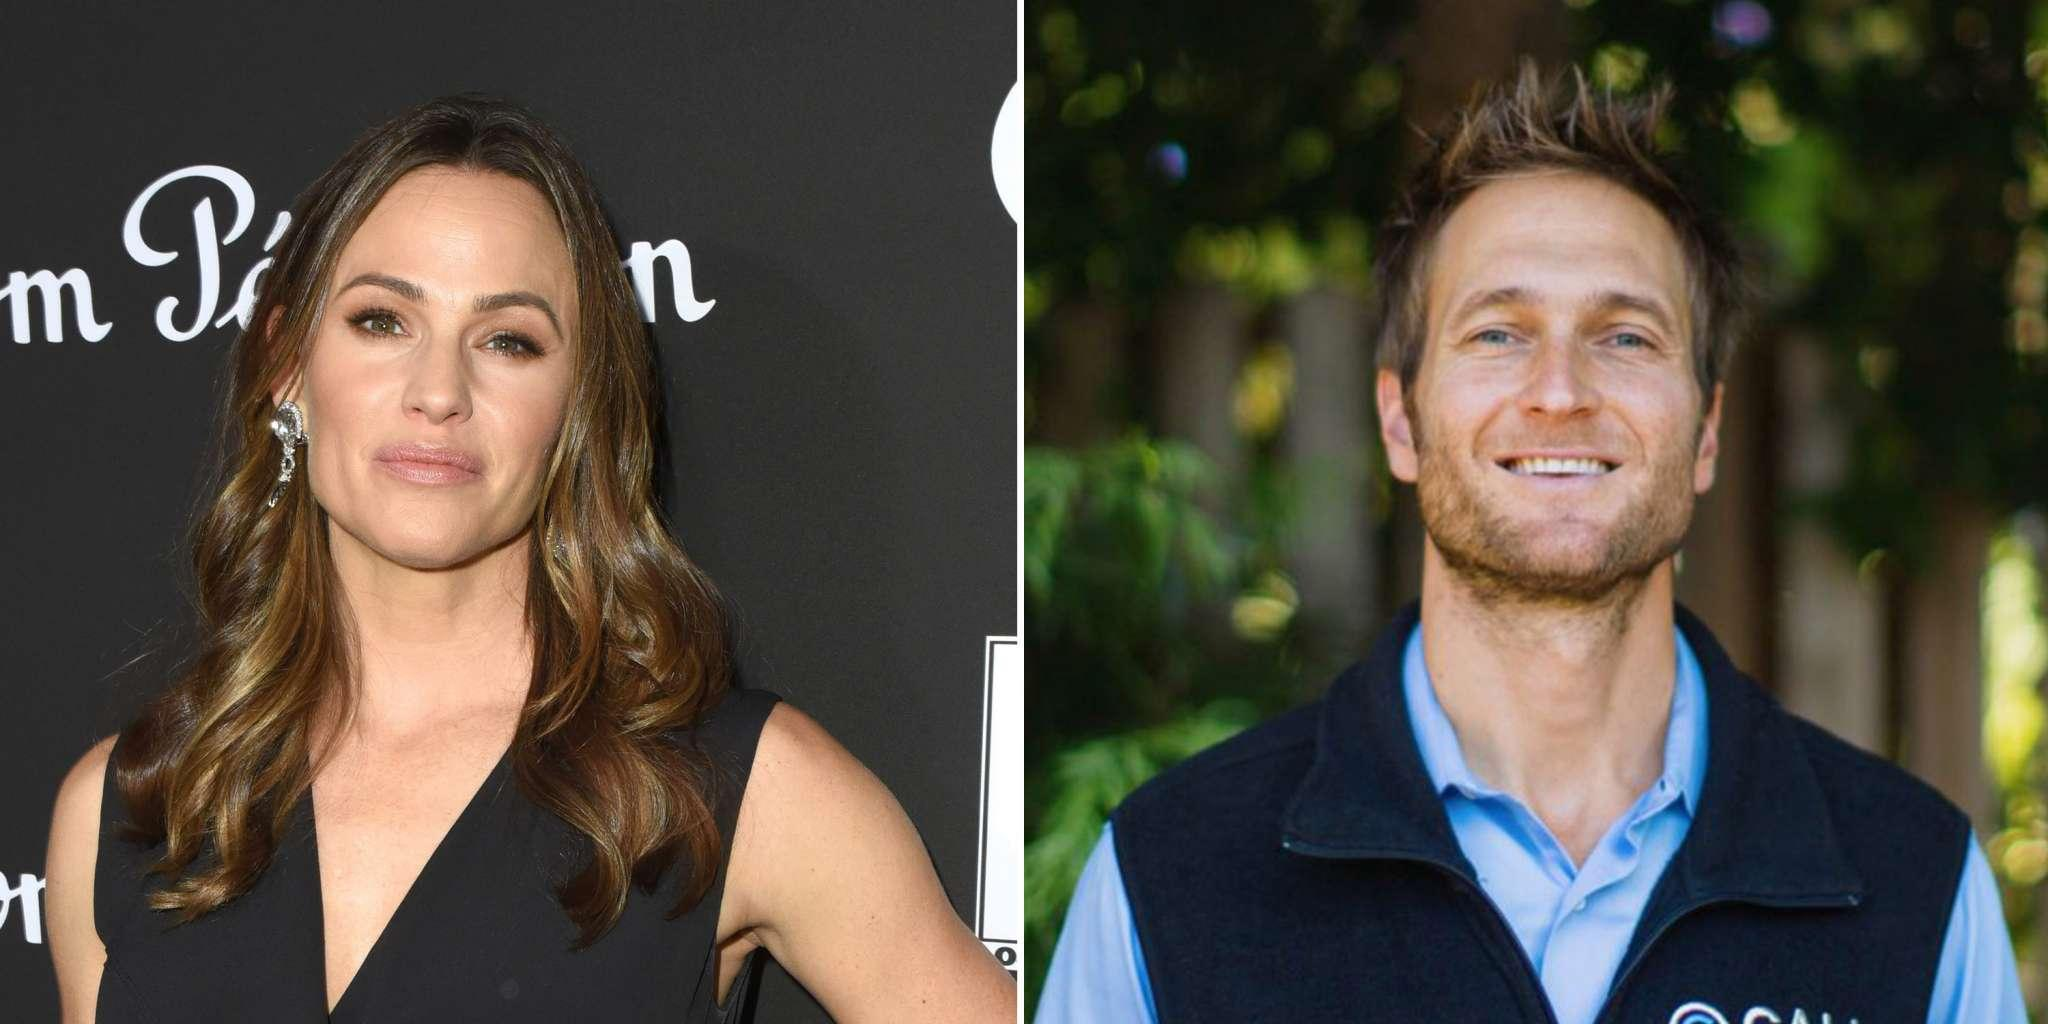 Jennifer Garner And John Miller On The Path To Marriage Already?